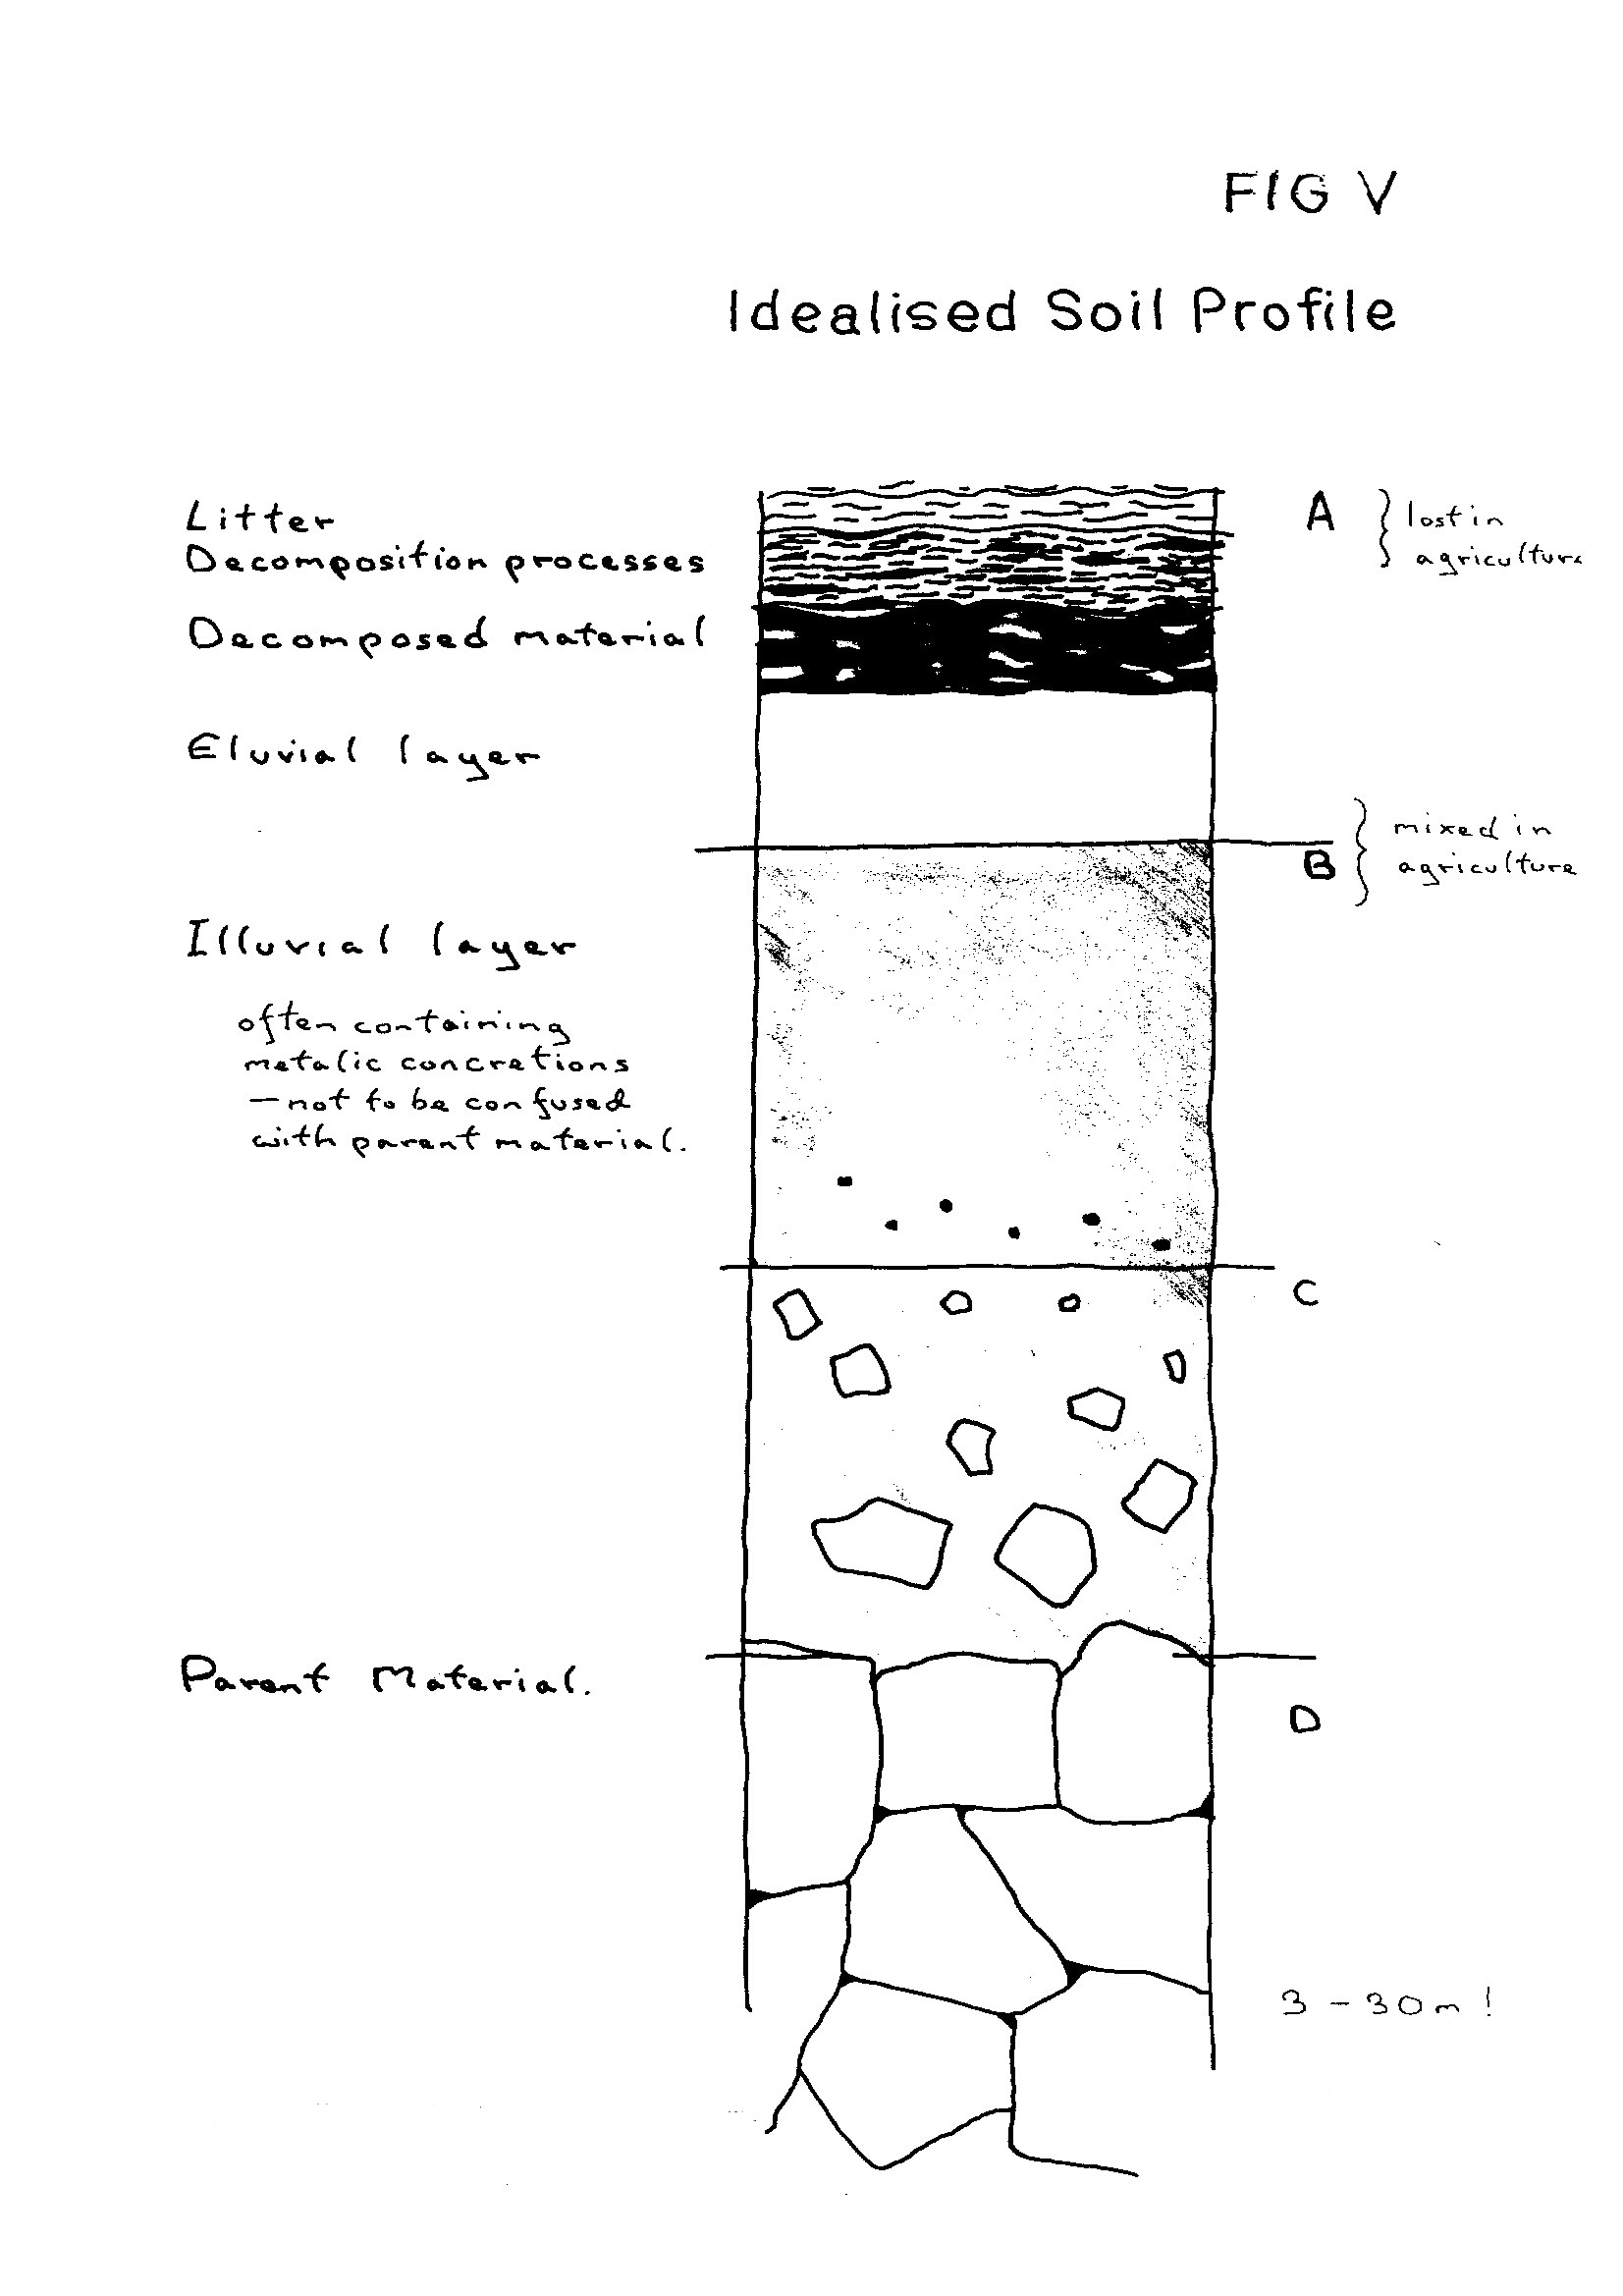 soil profile diagram of michigan ac unit thermostat wiring file fig v idealised jpg wikimedia commons